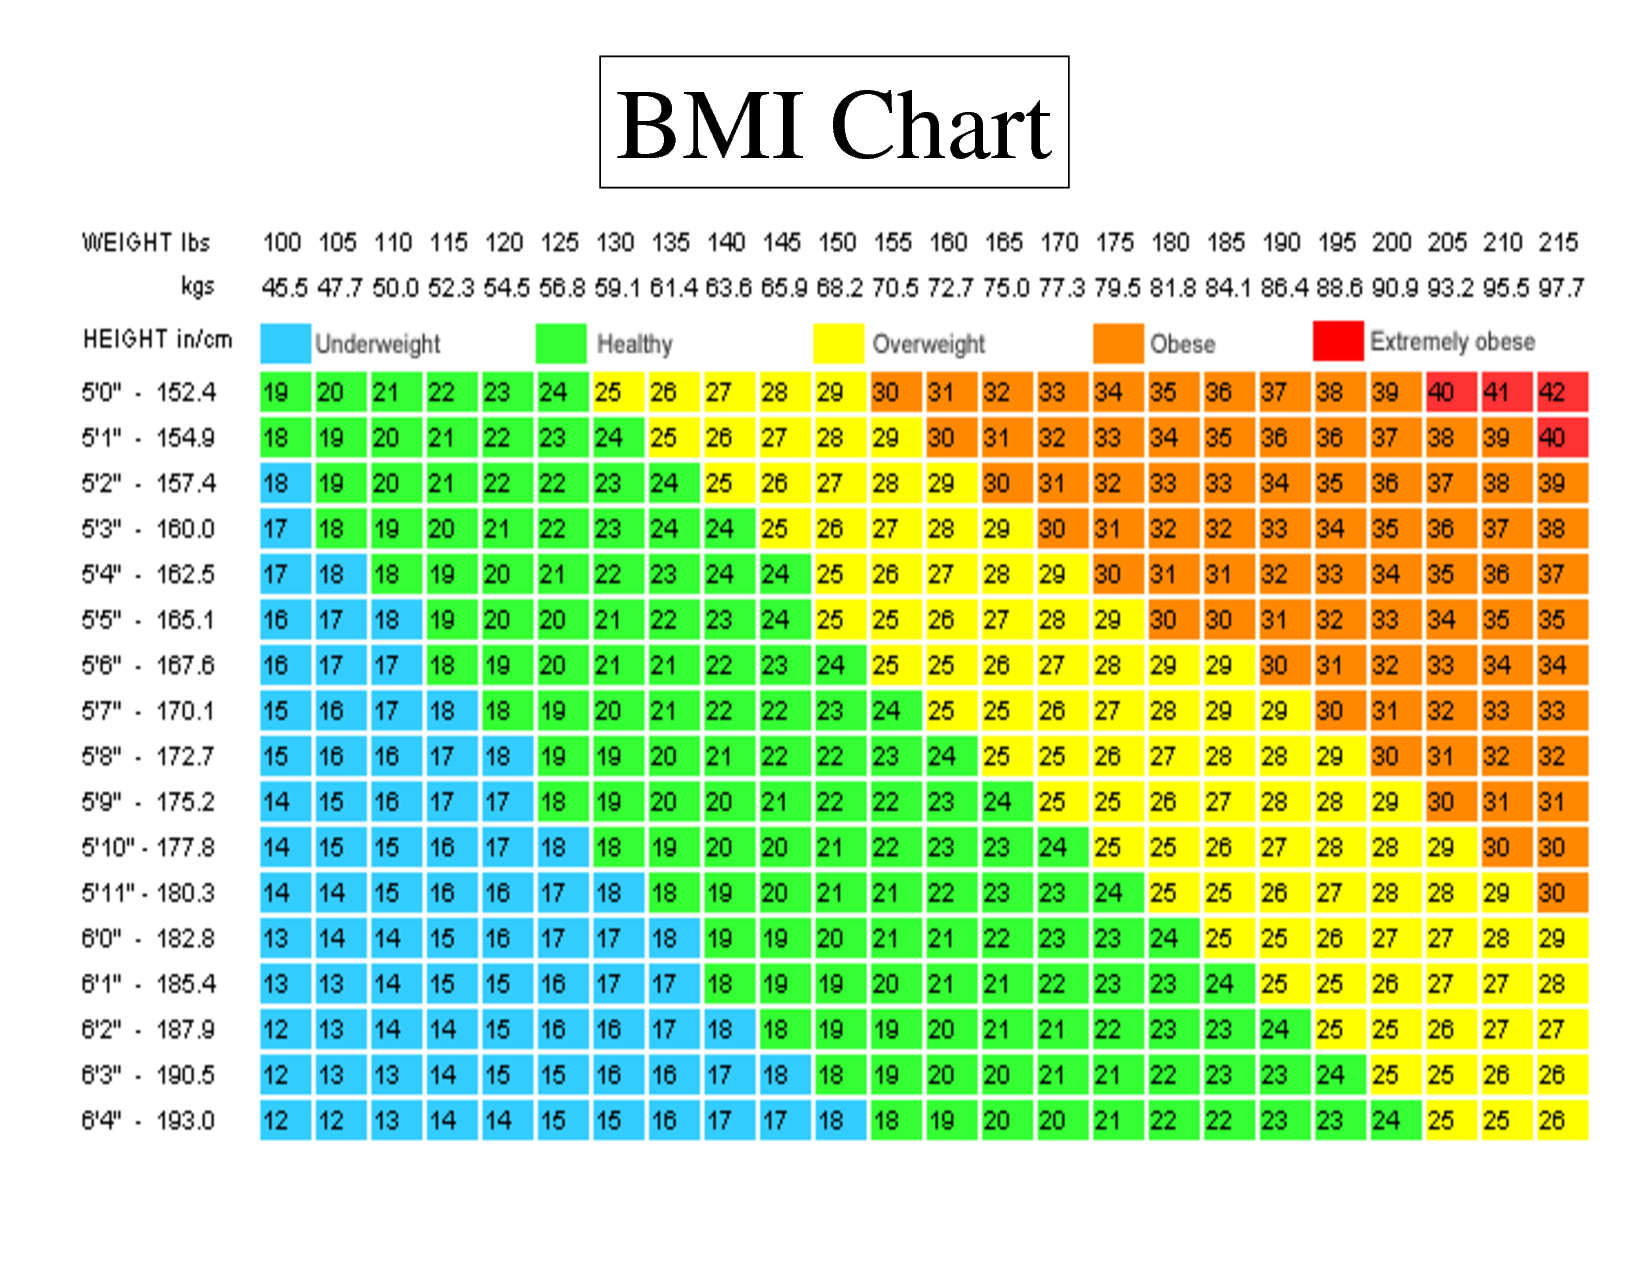 Body mass index bmi chart weight loss chart lost weight and bmi calculator bmi body mass index measurement body fat based height weight applies geenschuldenfo Gallery